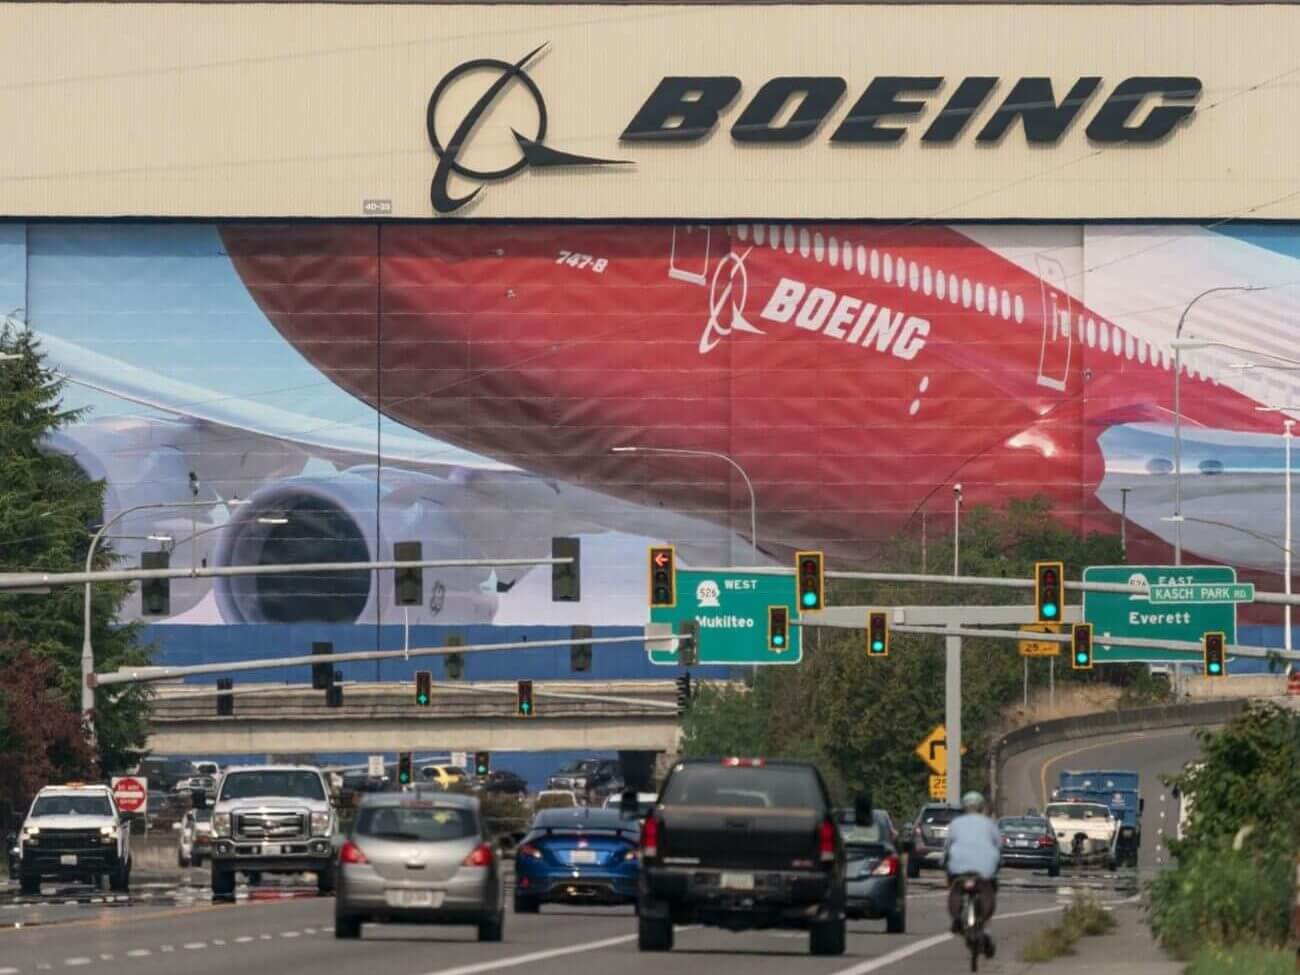 Boeing Is the Most up-to-date Firm to Ranking away a Antagonistic Industry Atmosphere